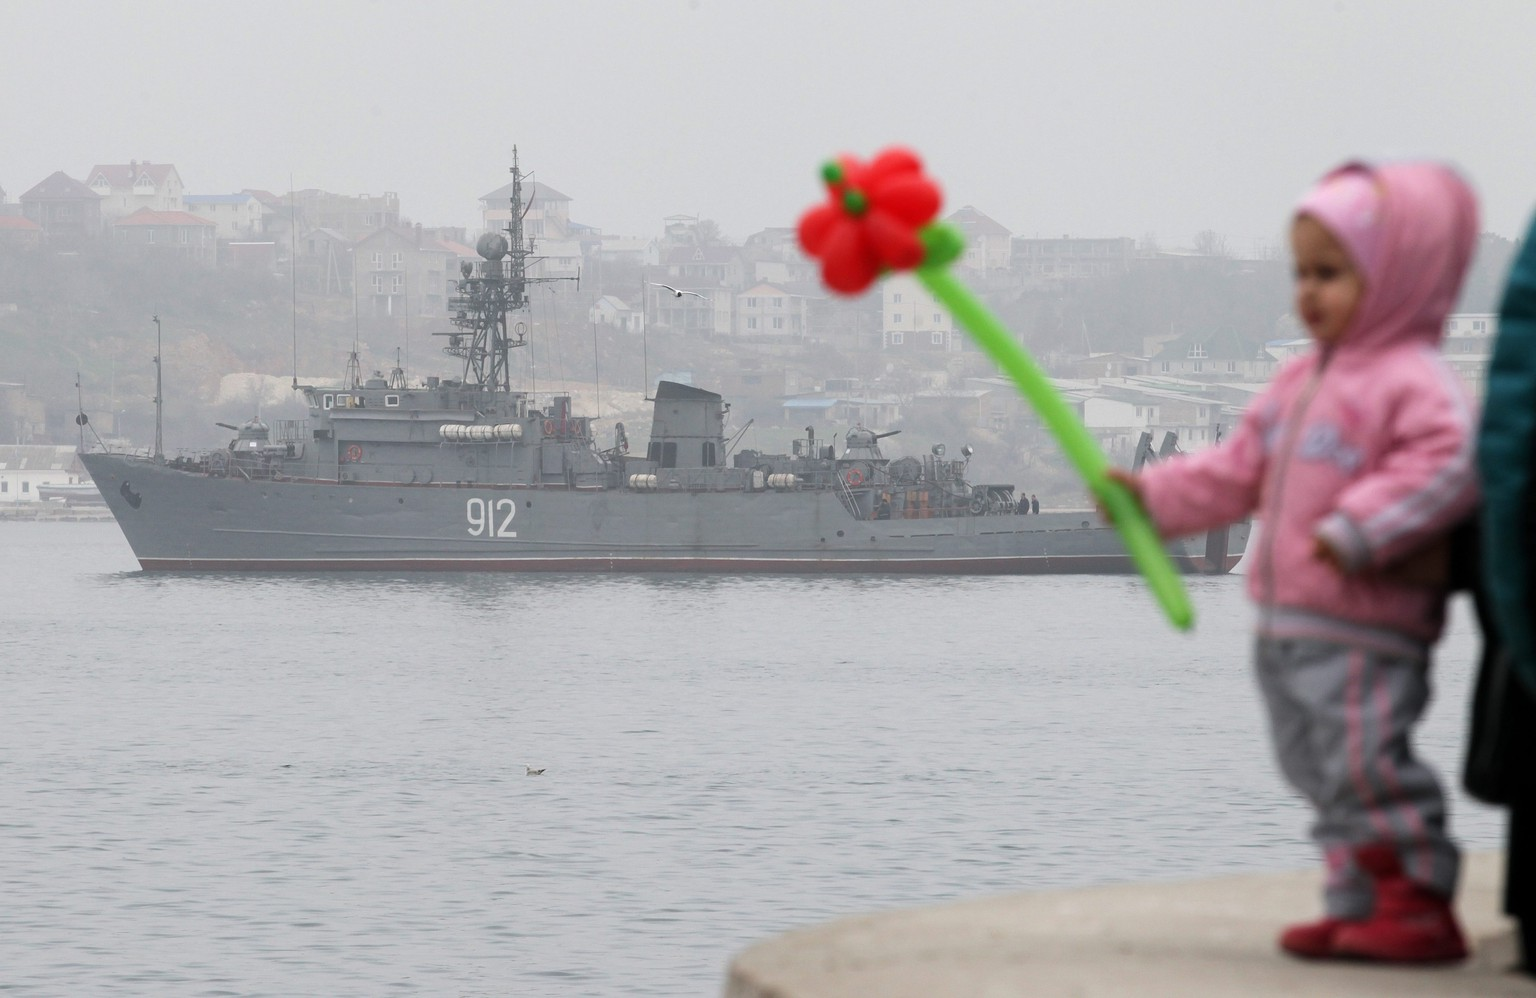 epa04115028 A child holds a flower as a Russian Navy ship, the minesweeper 'Turbinist', patrols the harbor of Sevastopol, Crimea, Ukraine, 08 March 2014. The USA and European Union have threatened sanctions against Moscow over the military standoff in the strategic Crimean peninsula, and are urging Russia to pull back its forces in the region and allow in international observers and human rights monitors. Crimea, which has a majority ethnic Russian population, is strategically important to Russia as the home port of its Black Sea Fleet.  EPA/ZURAB KURTSIKIDZE